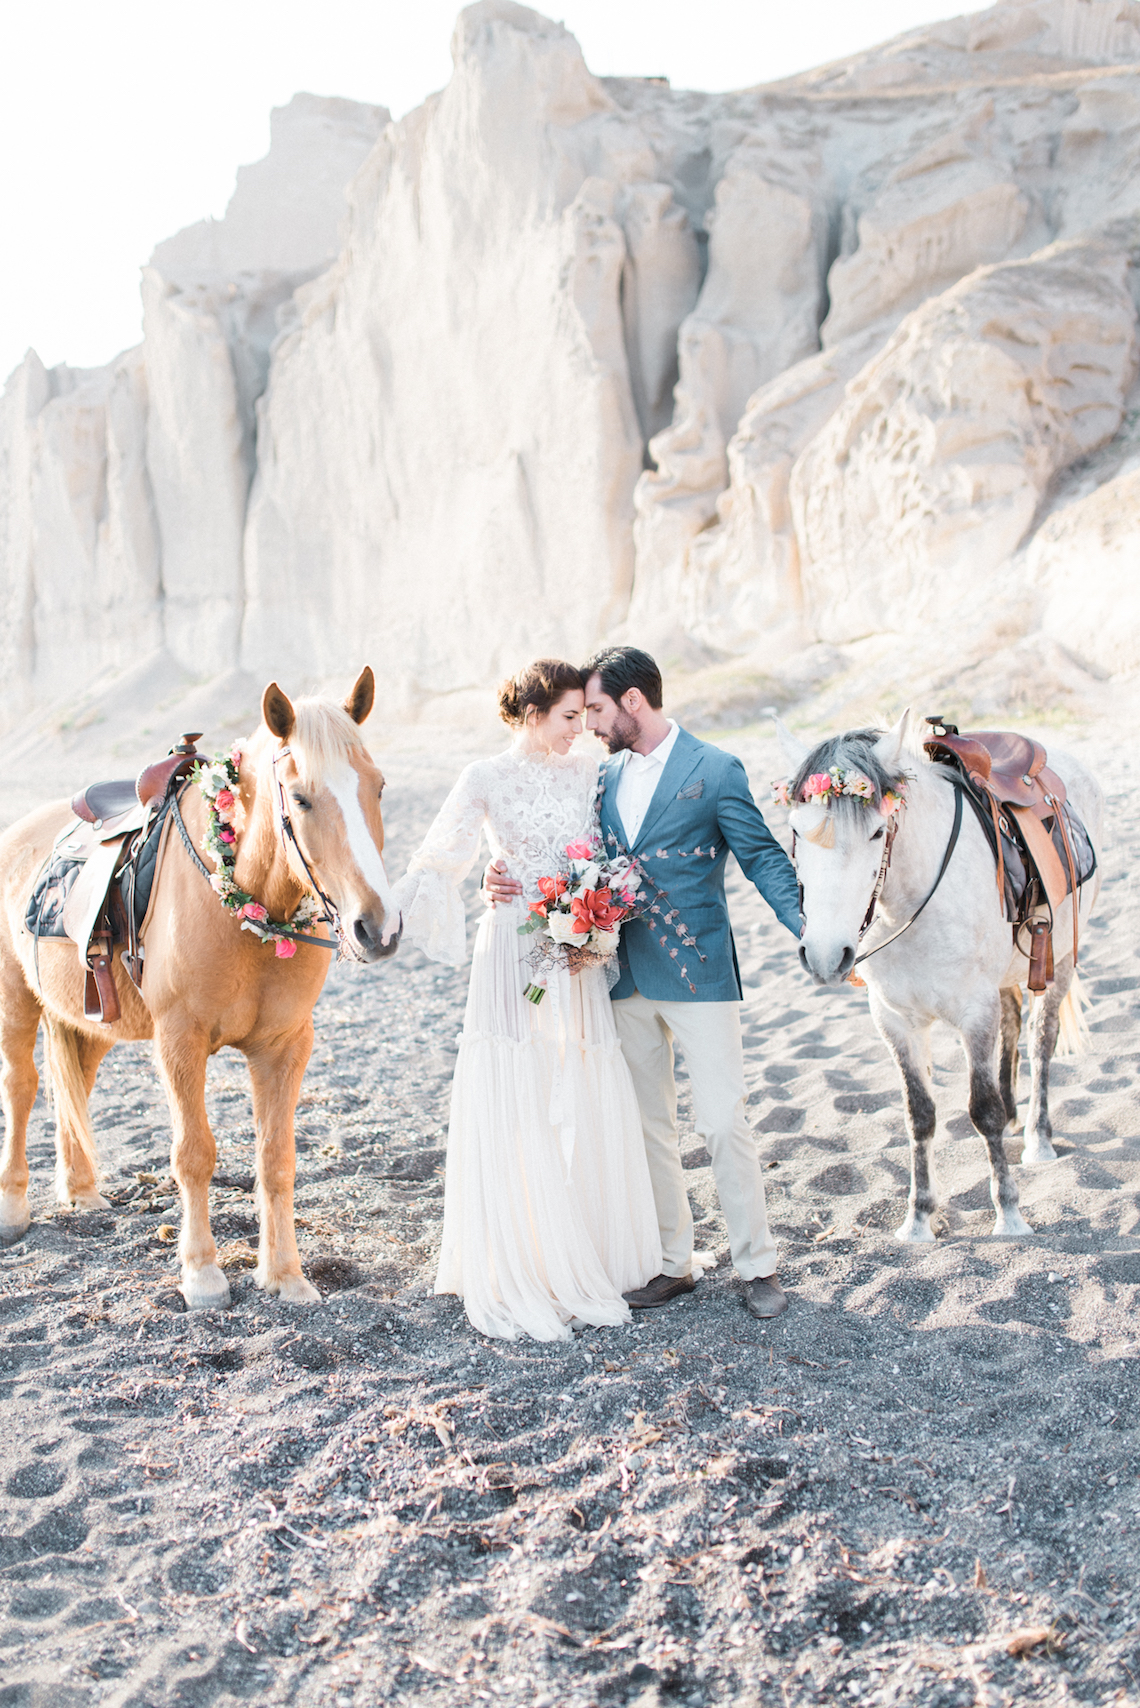 Seashell Wedding Ideas From The Beaches Of Greece – George Liopetas 18